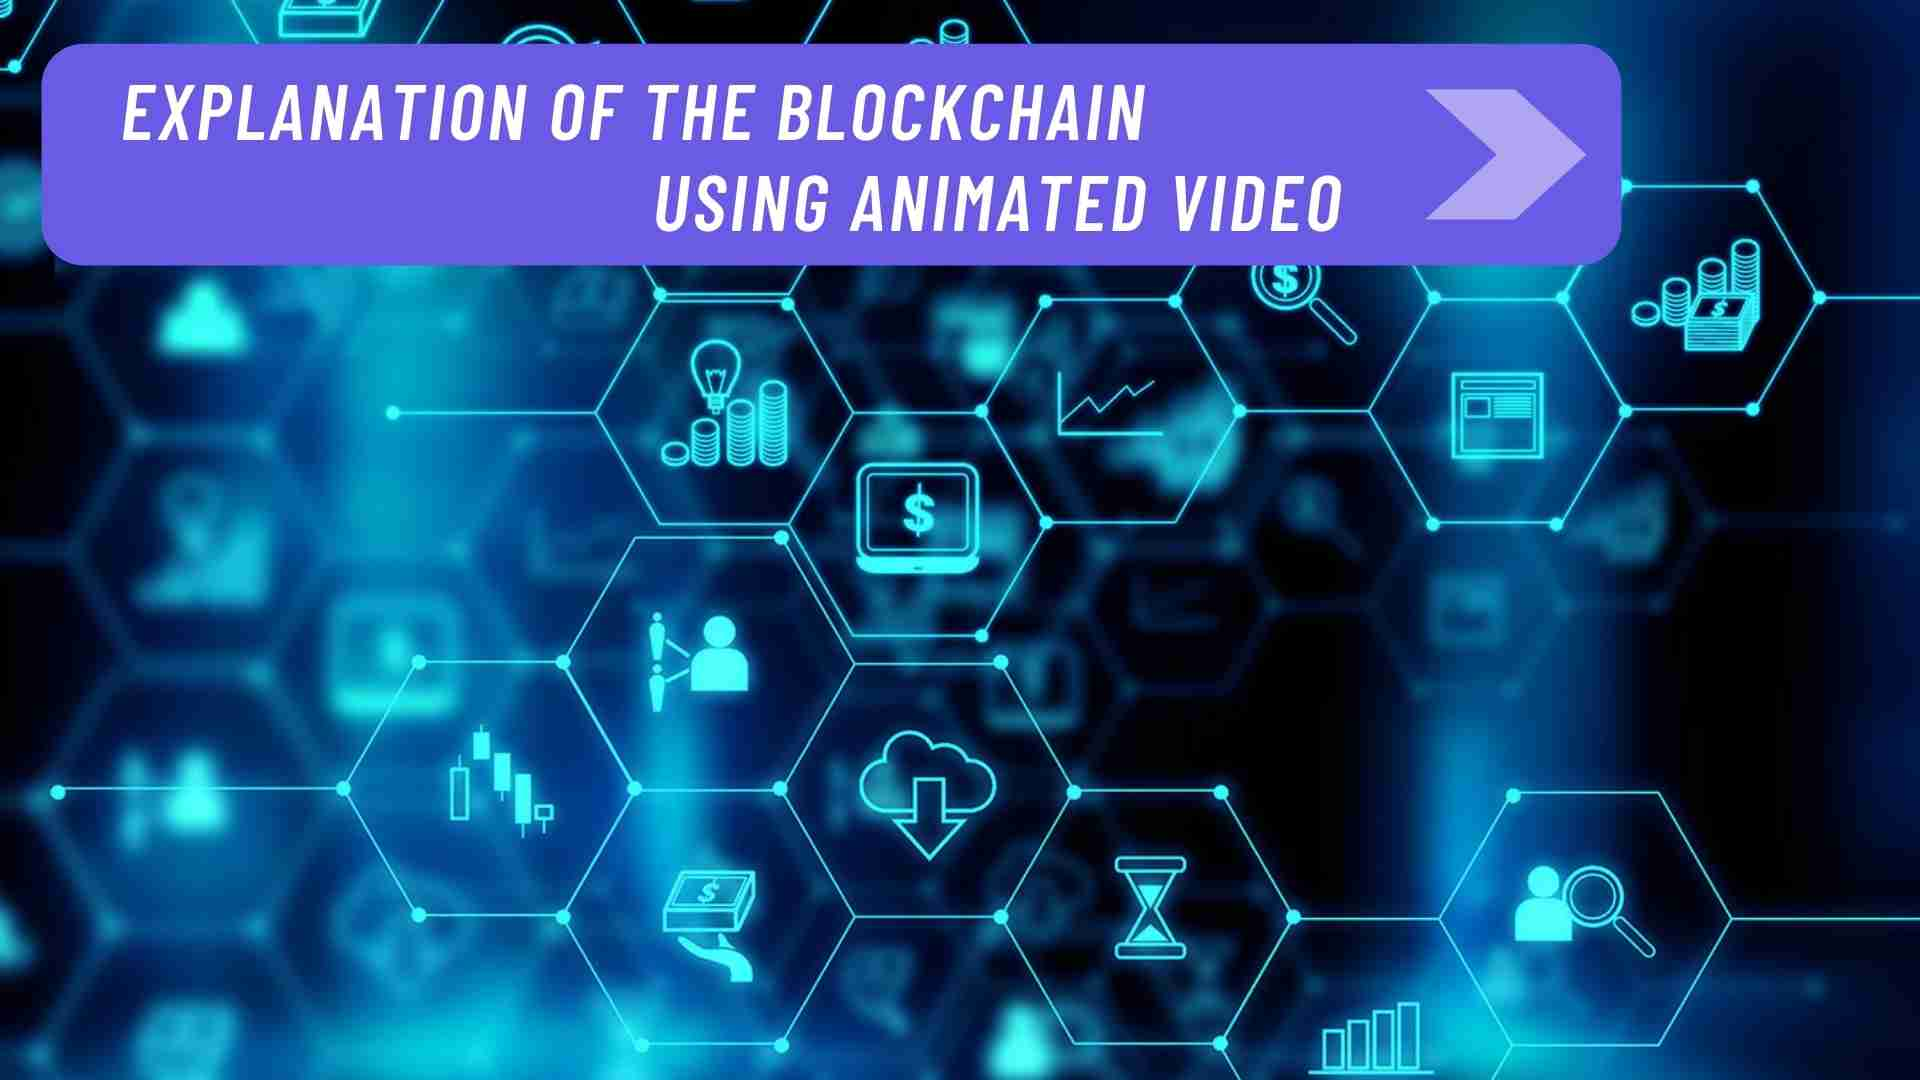 Which industries are explaining blockchain with the help of an animated video?